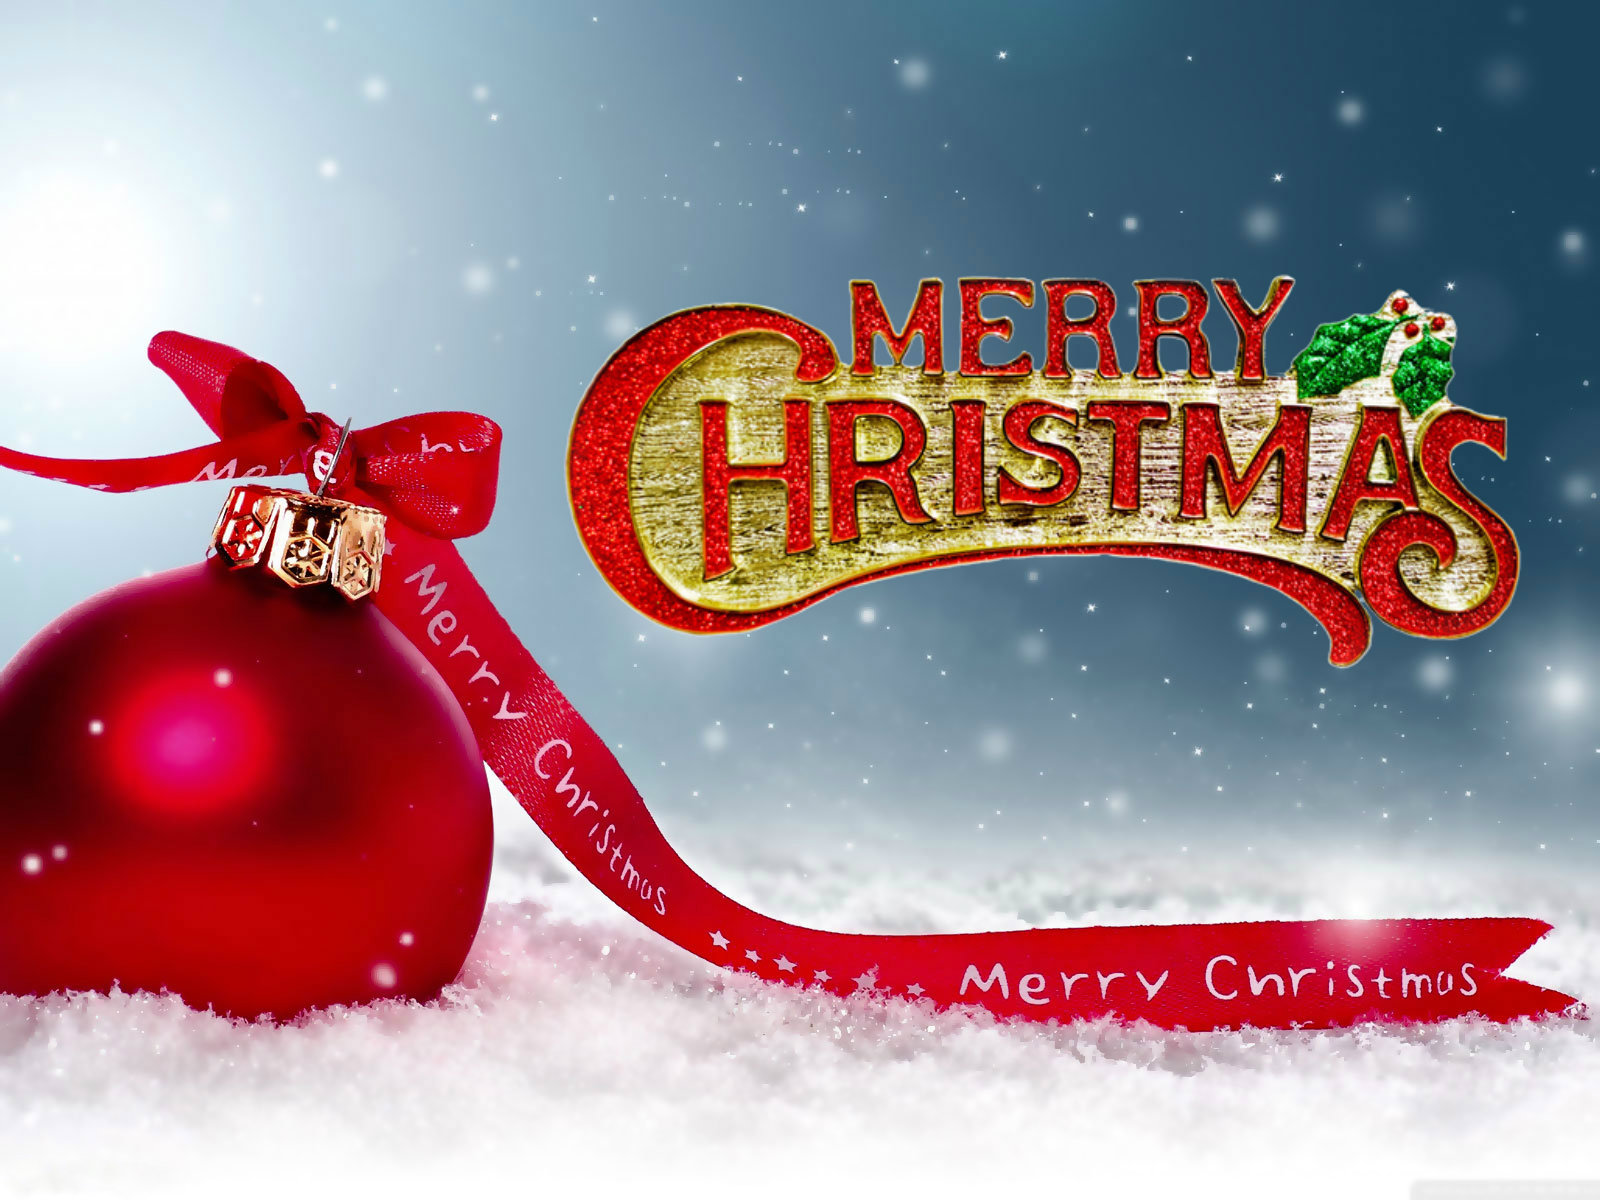 Merry Christmas 2018 Wishes Quotes Images Wallpapers For 1600x1200